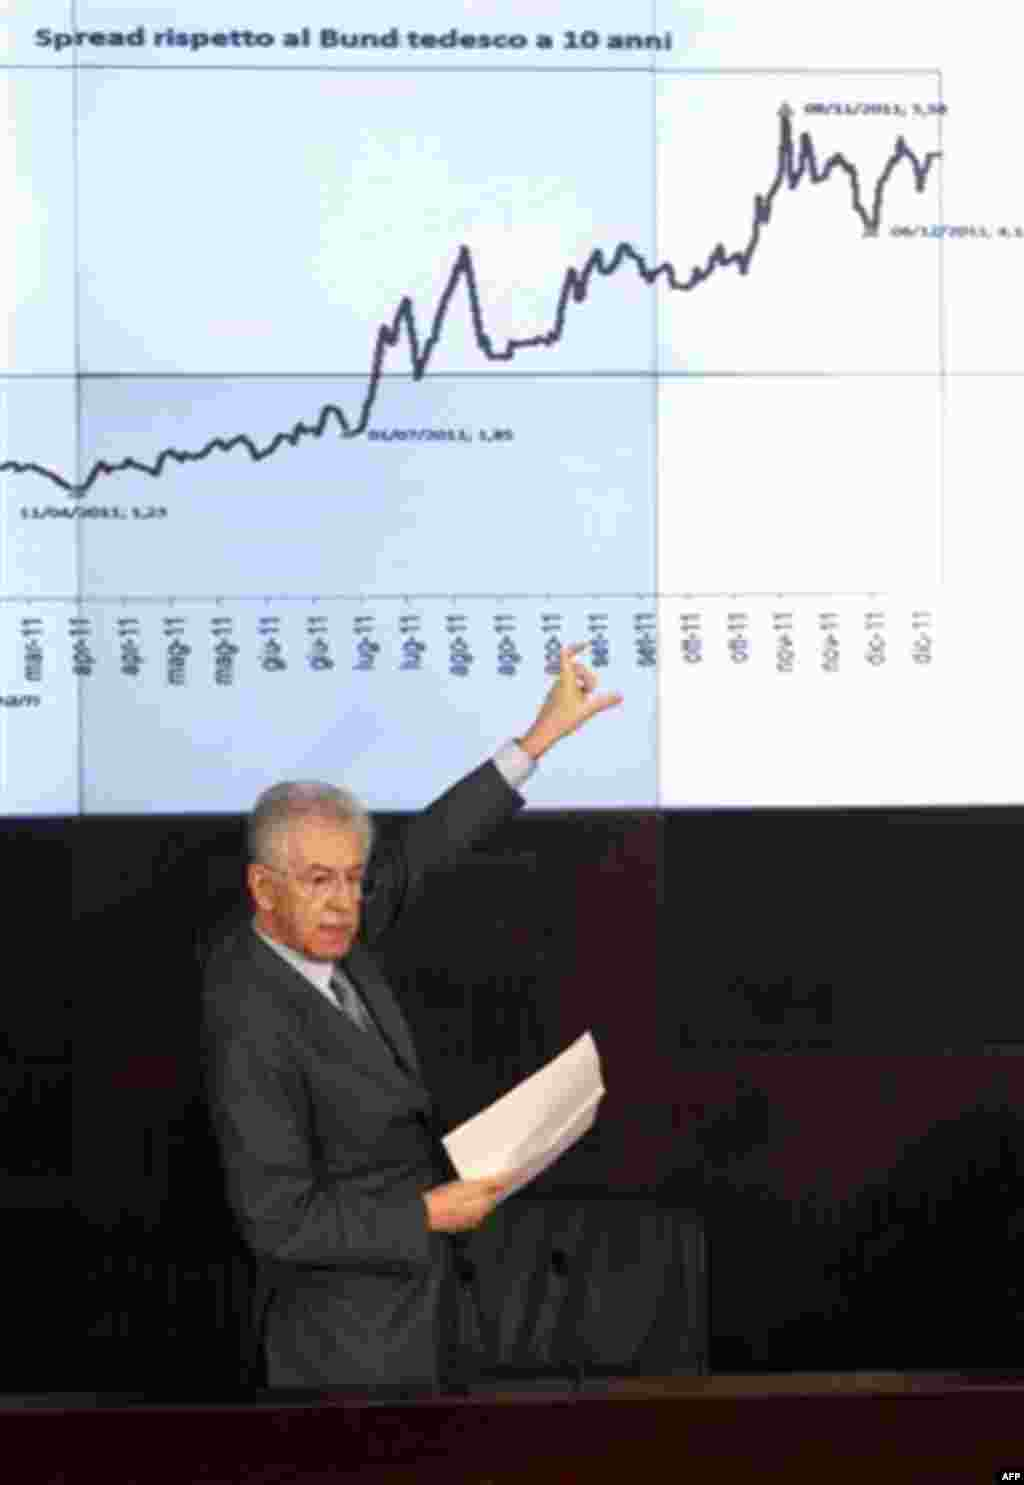 Italian Premier Mario Monti points to a graphic as he speaks during a news conference in Rome, Thursday, Dec. 29, 2011. In another sign that concerns over a default by Italy have eased over the past month, the country saw its borrowing rates fall for the